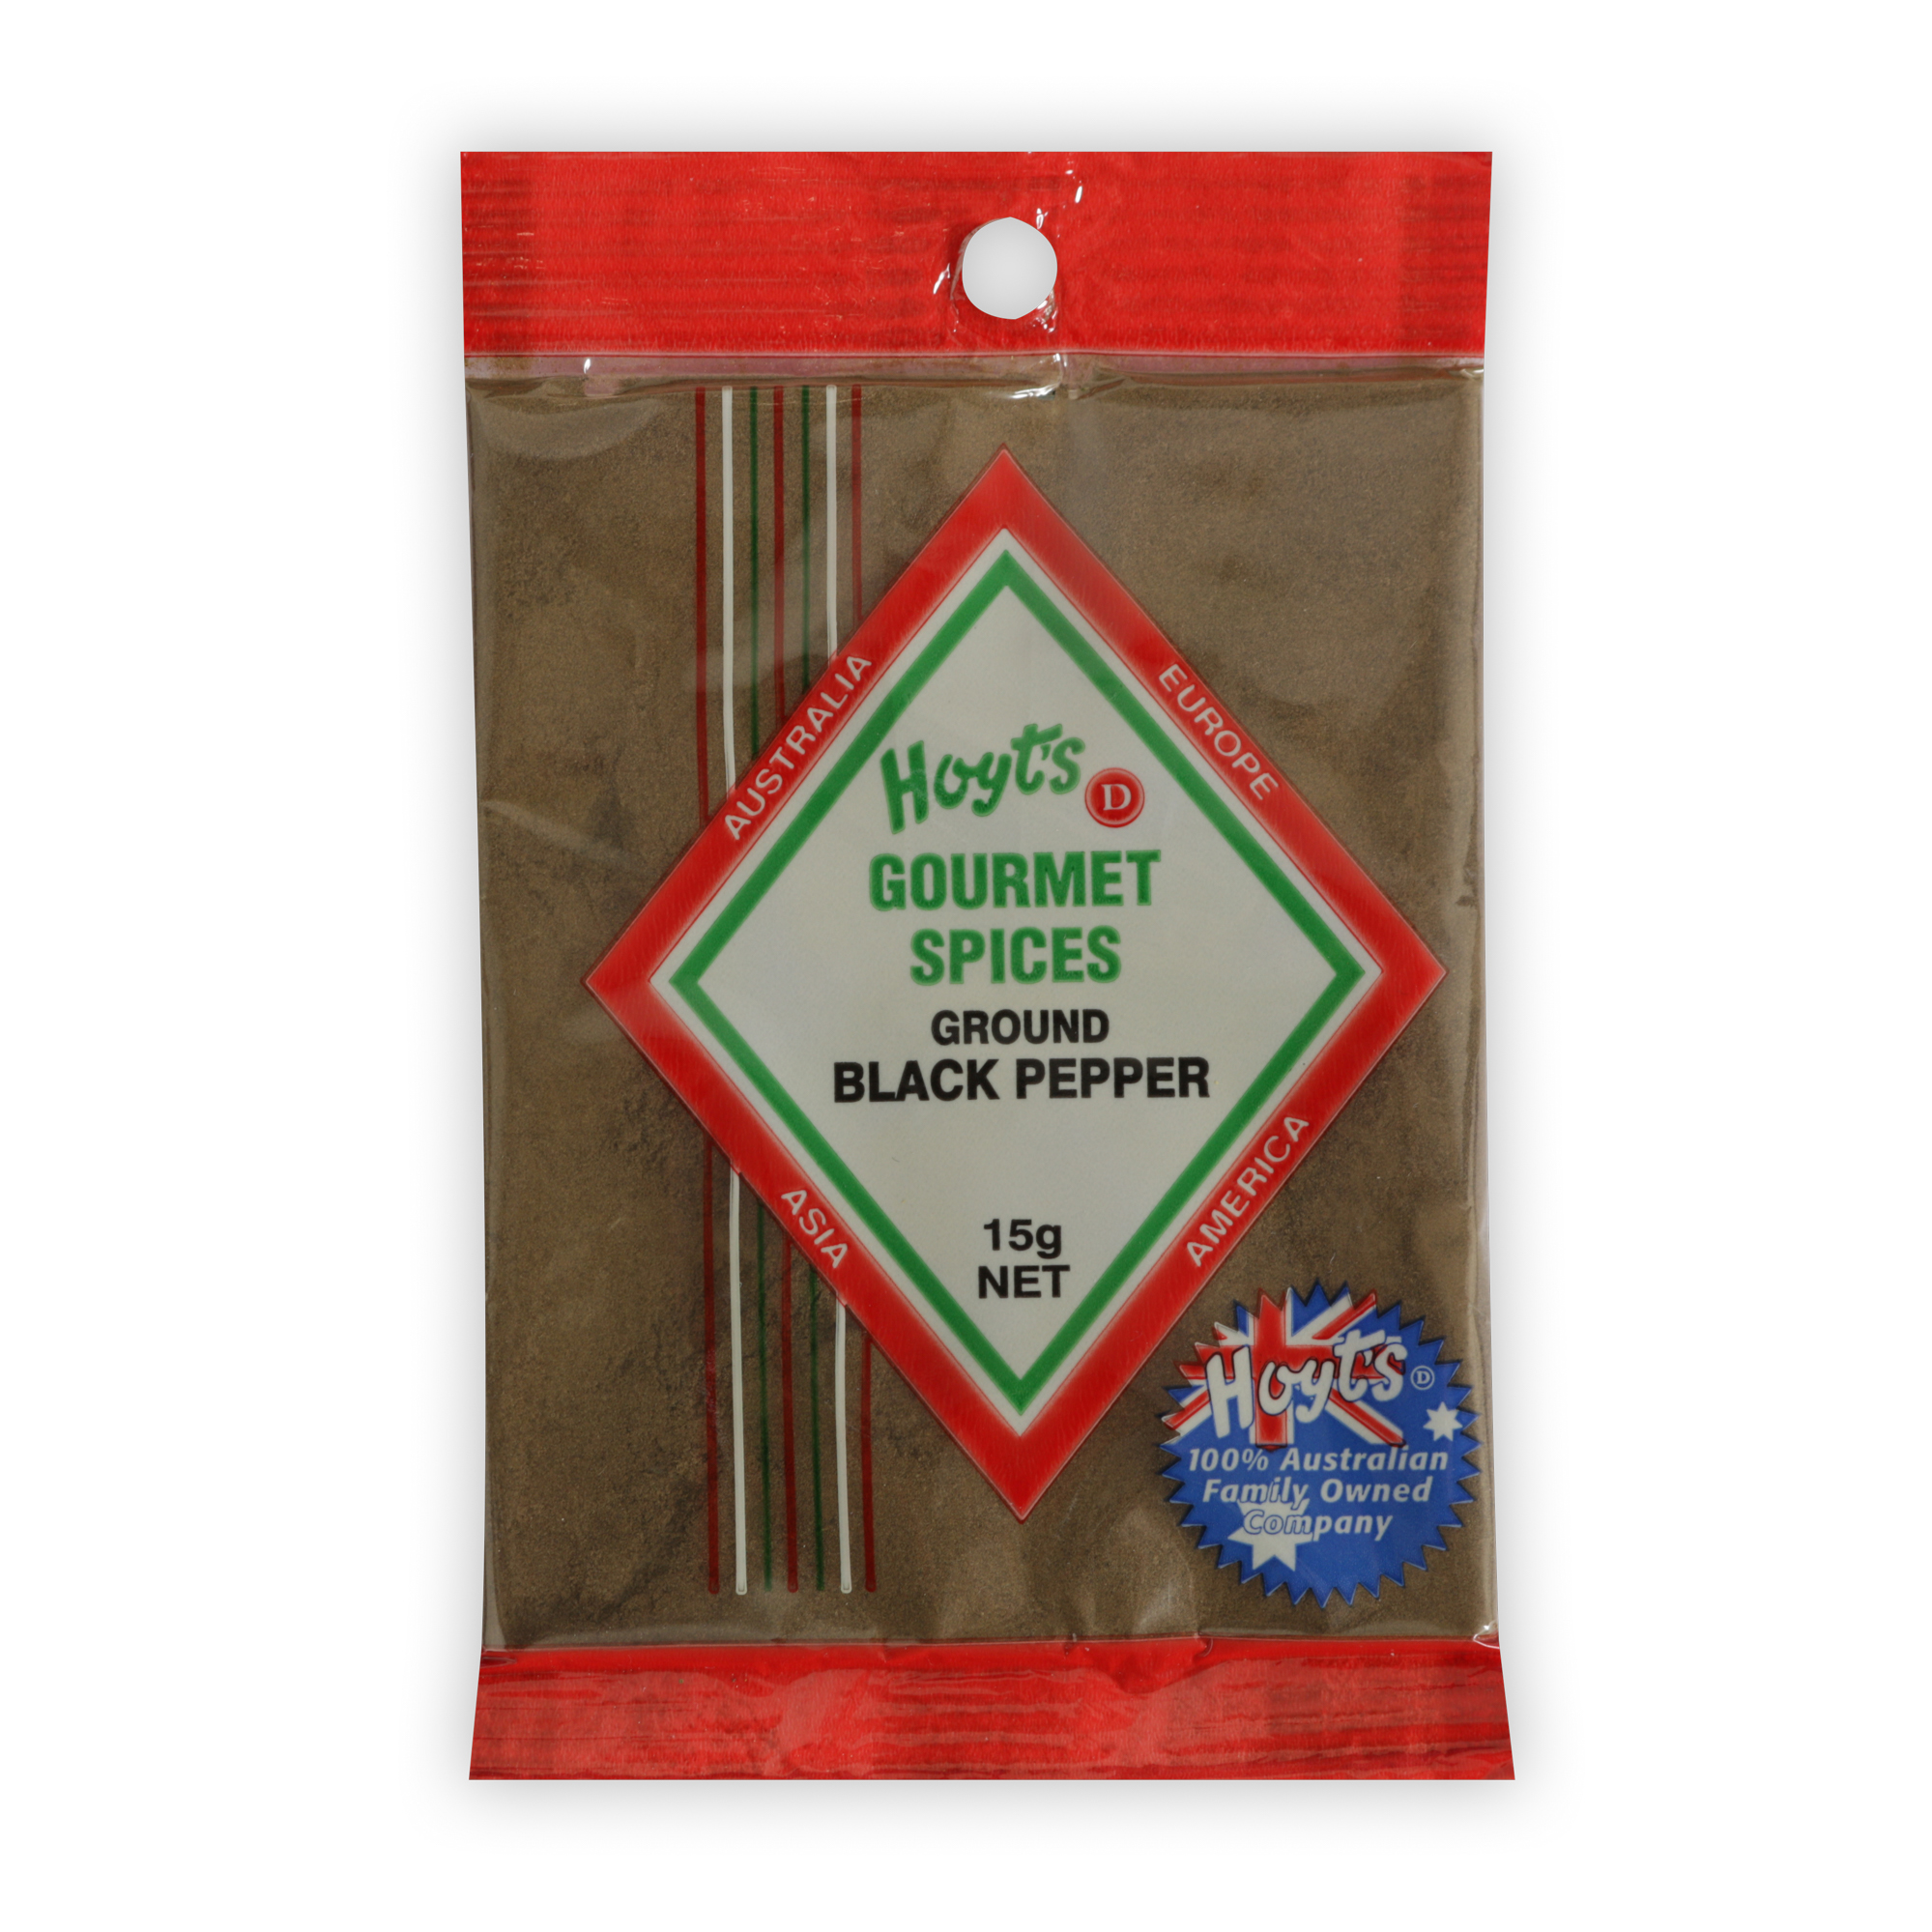 Hoyts Gourmet Pepper - Black Ground 15g